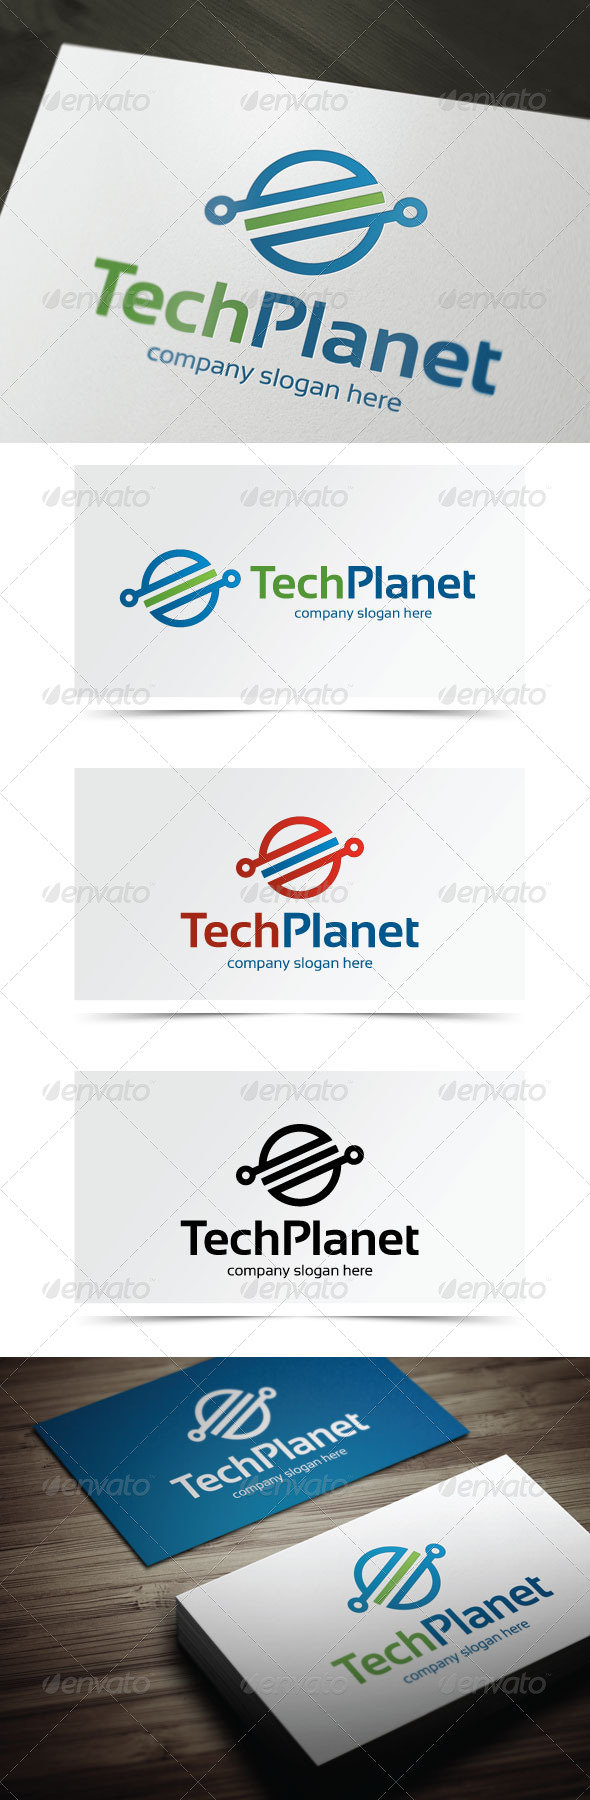 GraphicRiver Tech Planet 5449962